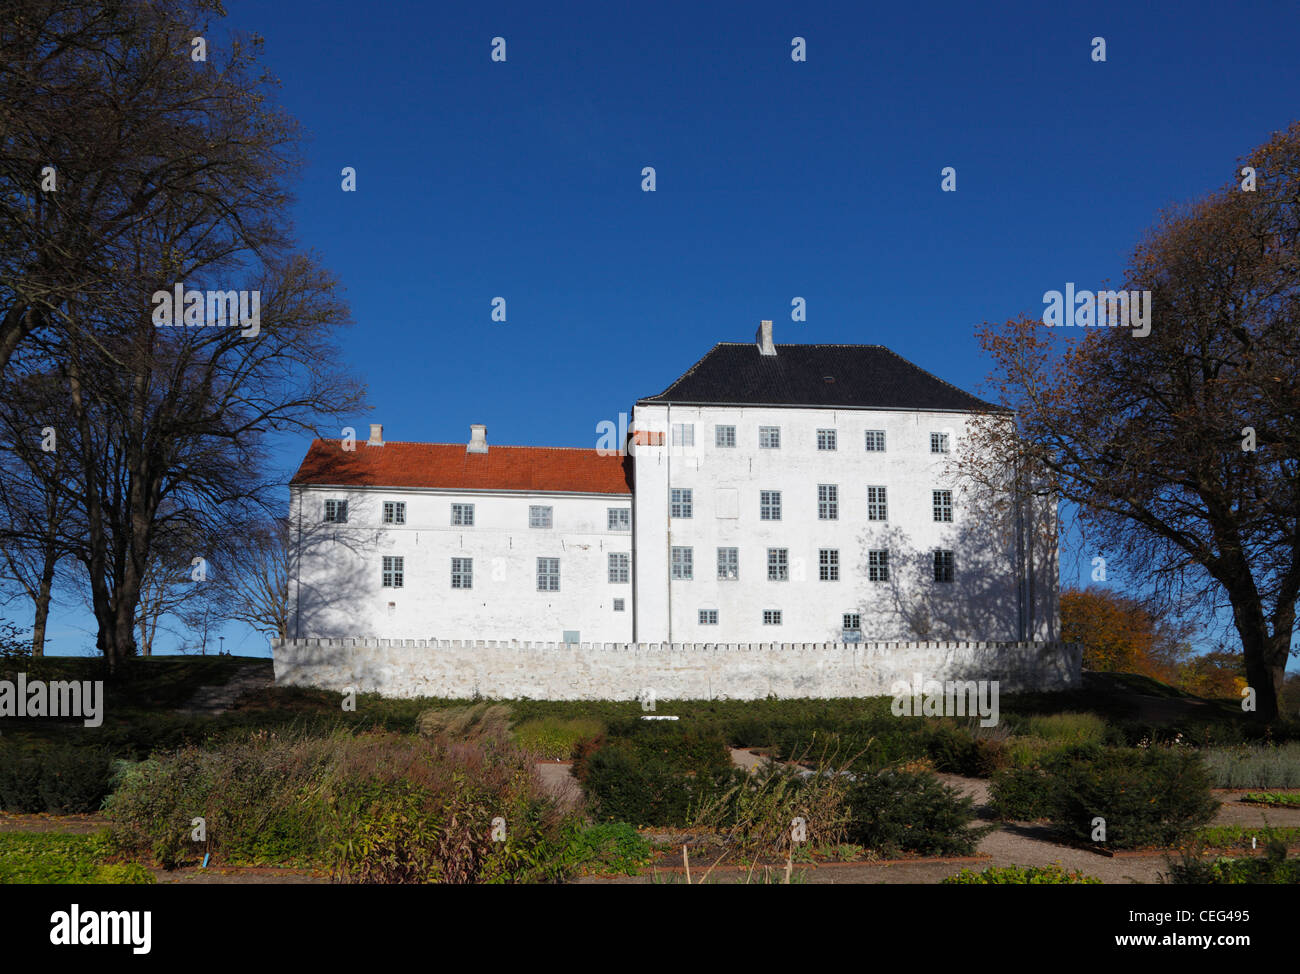 The haunted Dragsholm Castle in the north-western part of Zealand, Denmark. - Stock Image